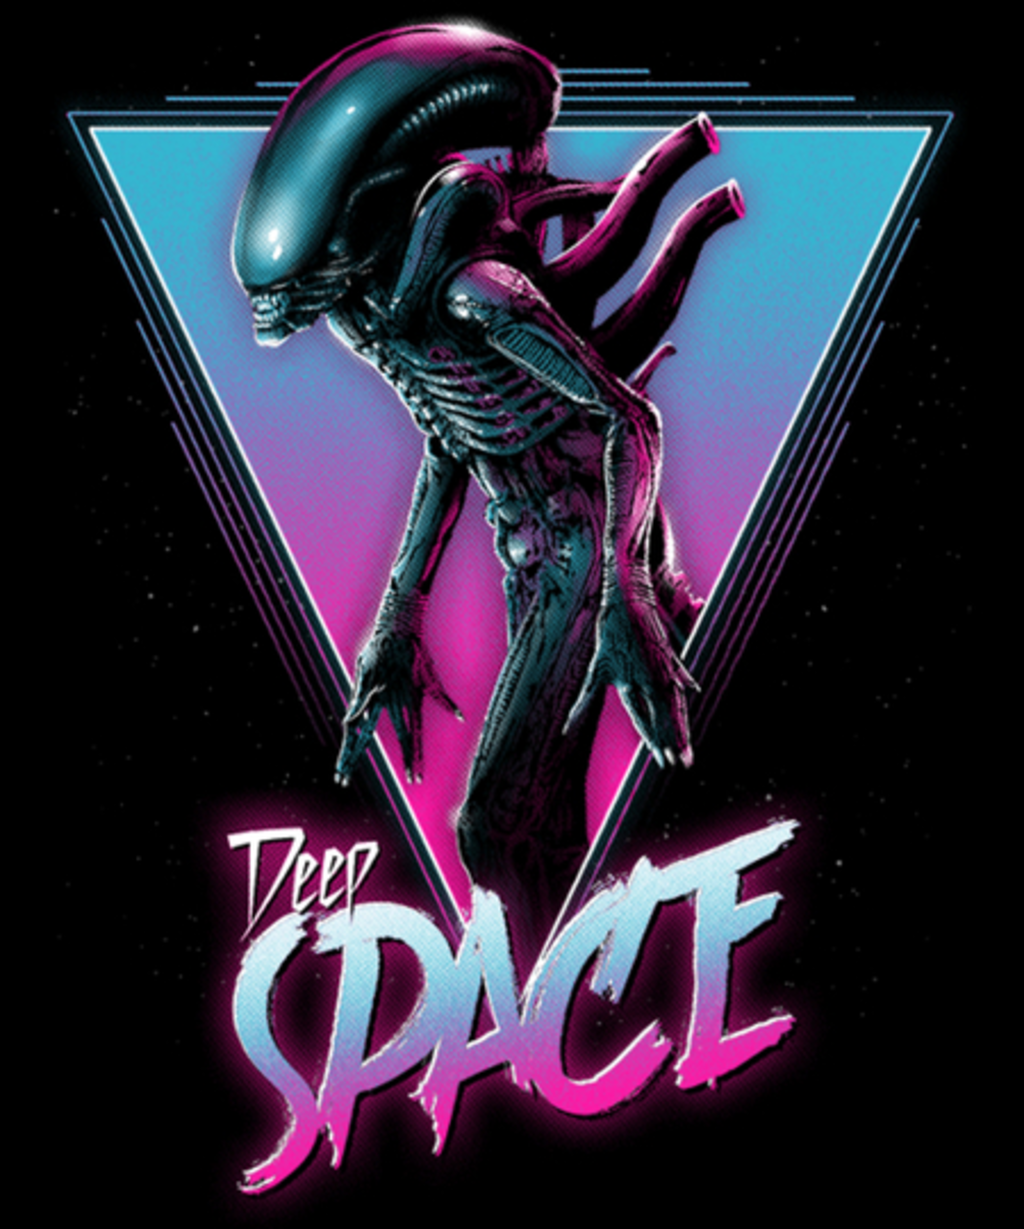 Qwertee: Deep Space